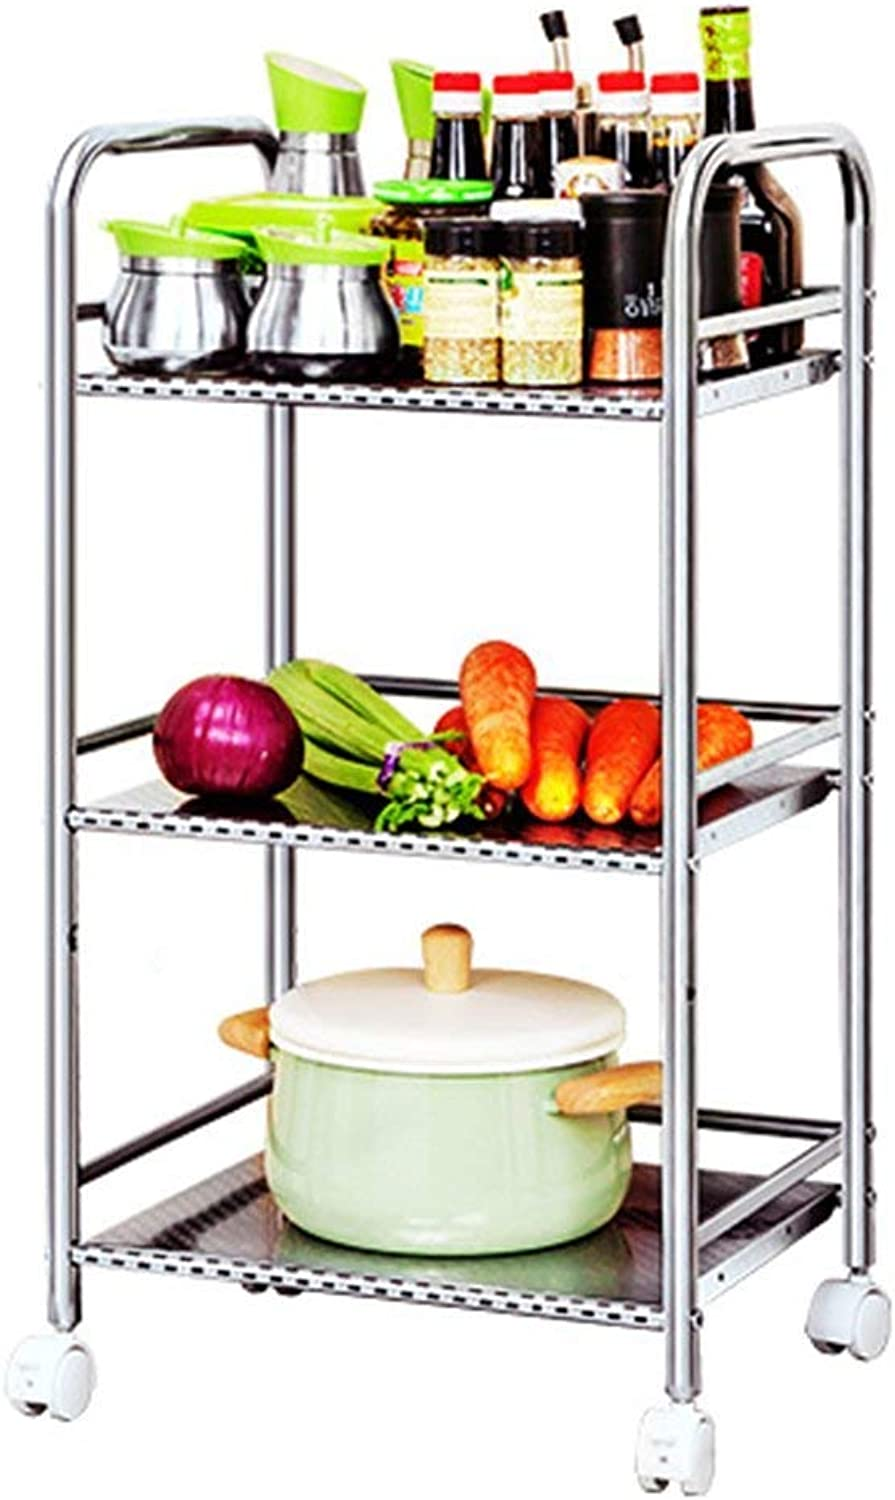 greenical Shelf 3-Story Kitchen Unit Storage Rack Stainless Steel Storage Rack Freestanding Pulley Display Stand (Size   40  32  75cm)